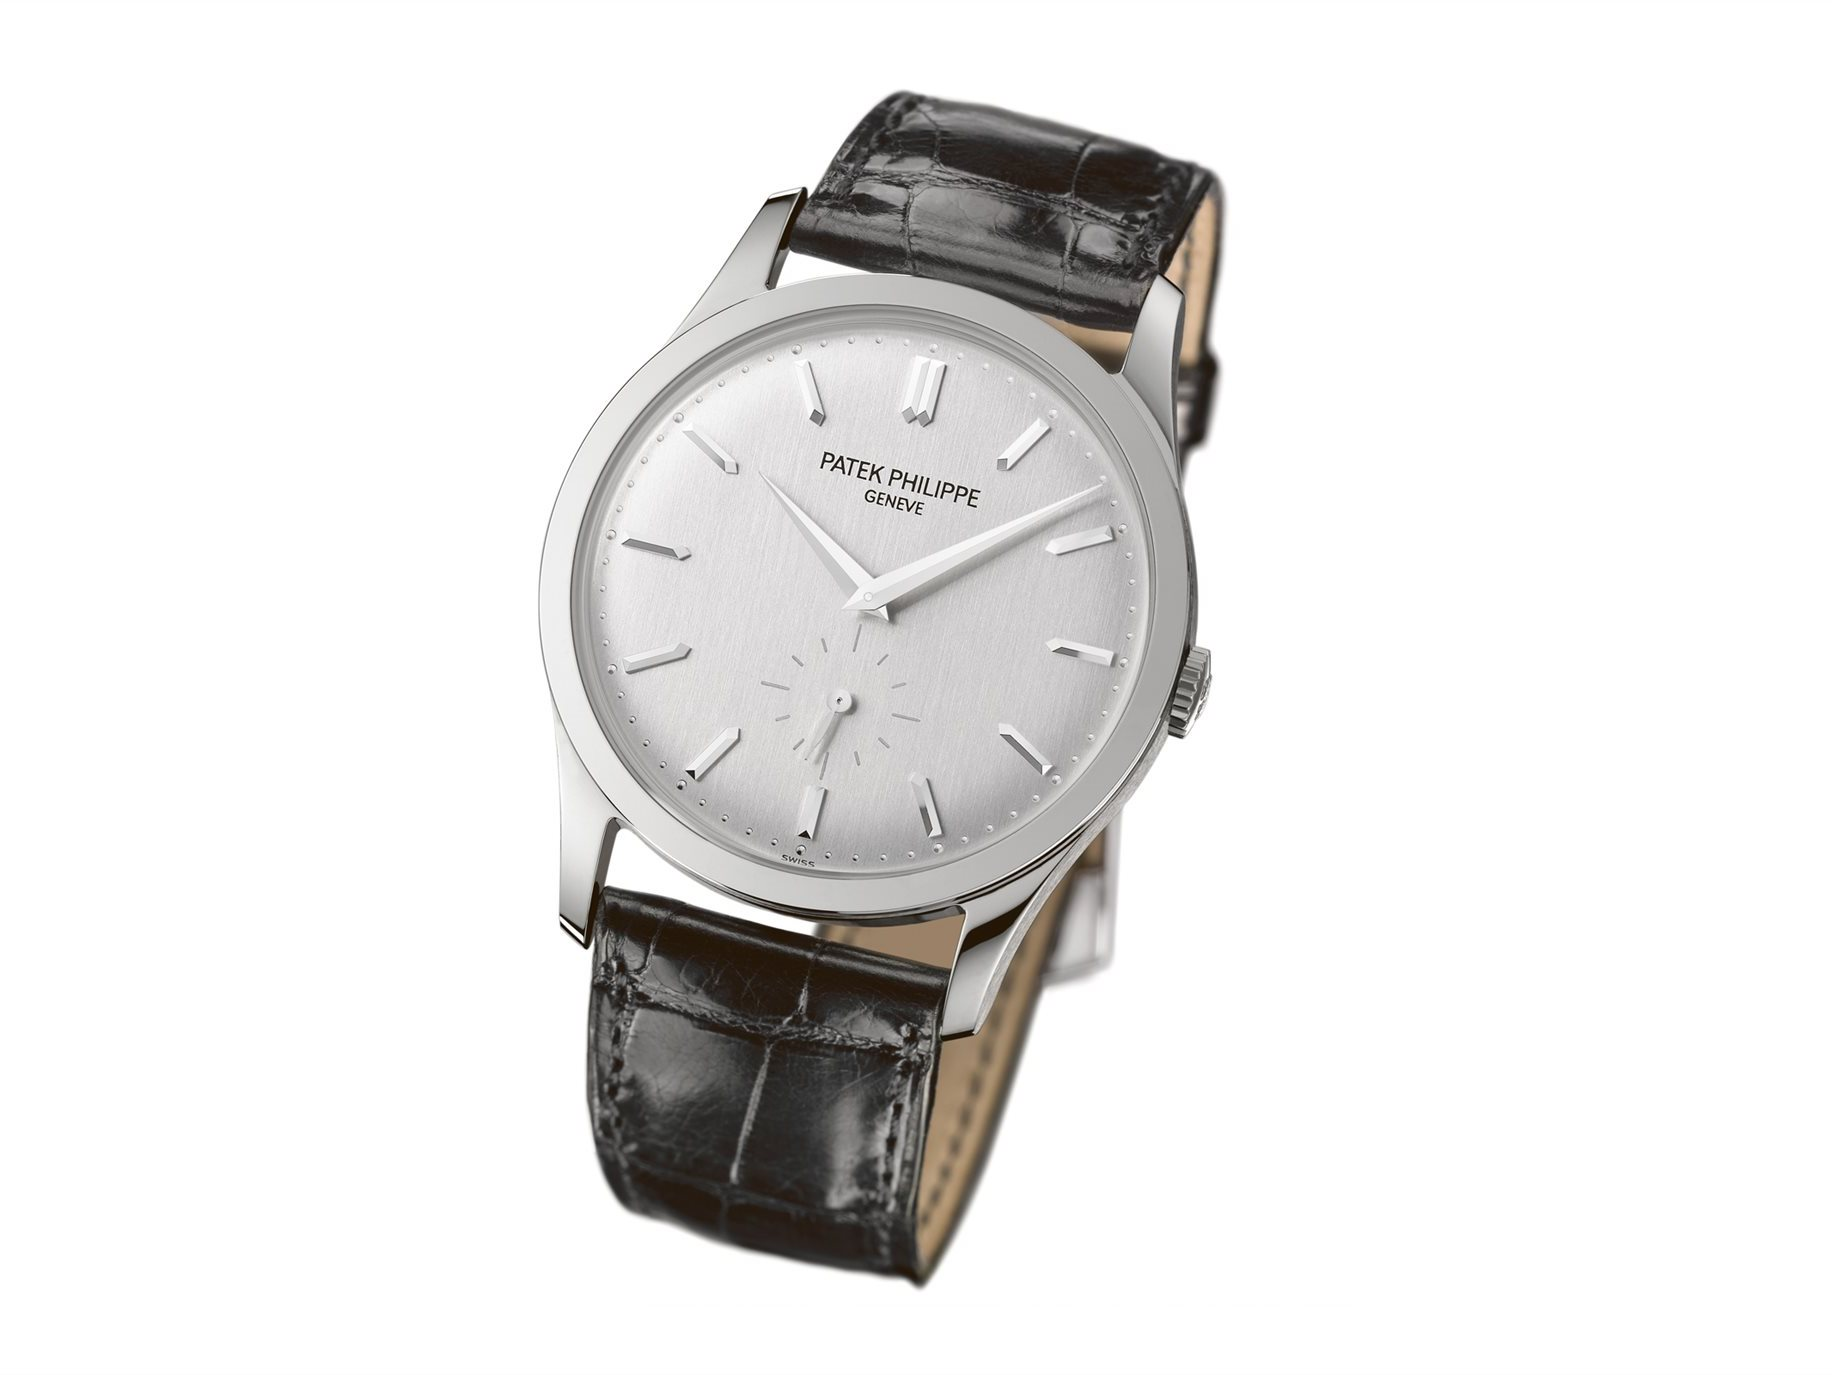 ĐỒNG HỒ PATEK PHILIPPER CALATRAVA 5196R SMALL SECONDS